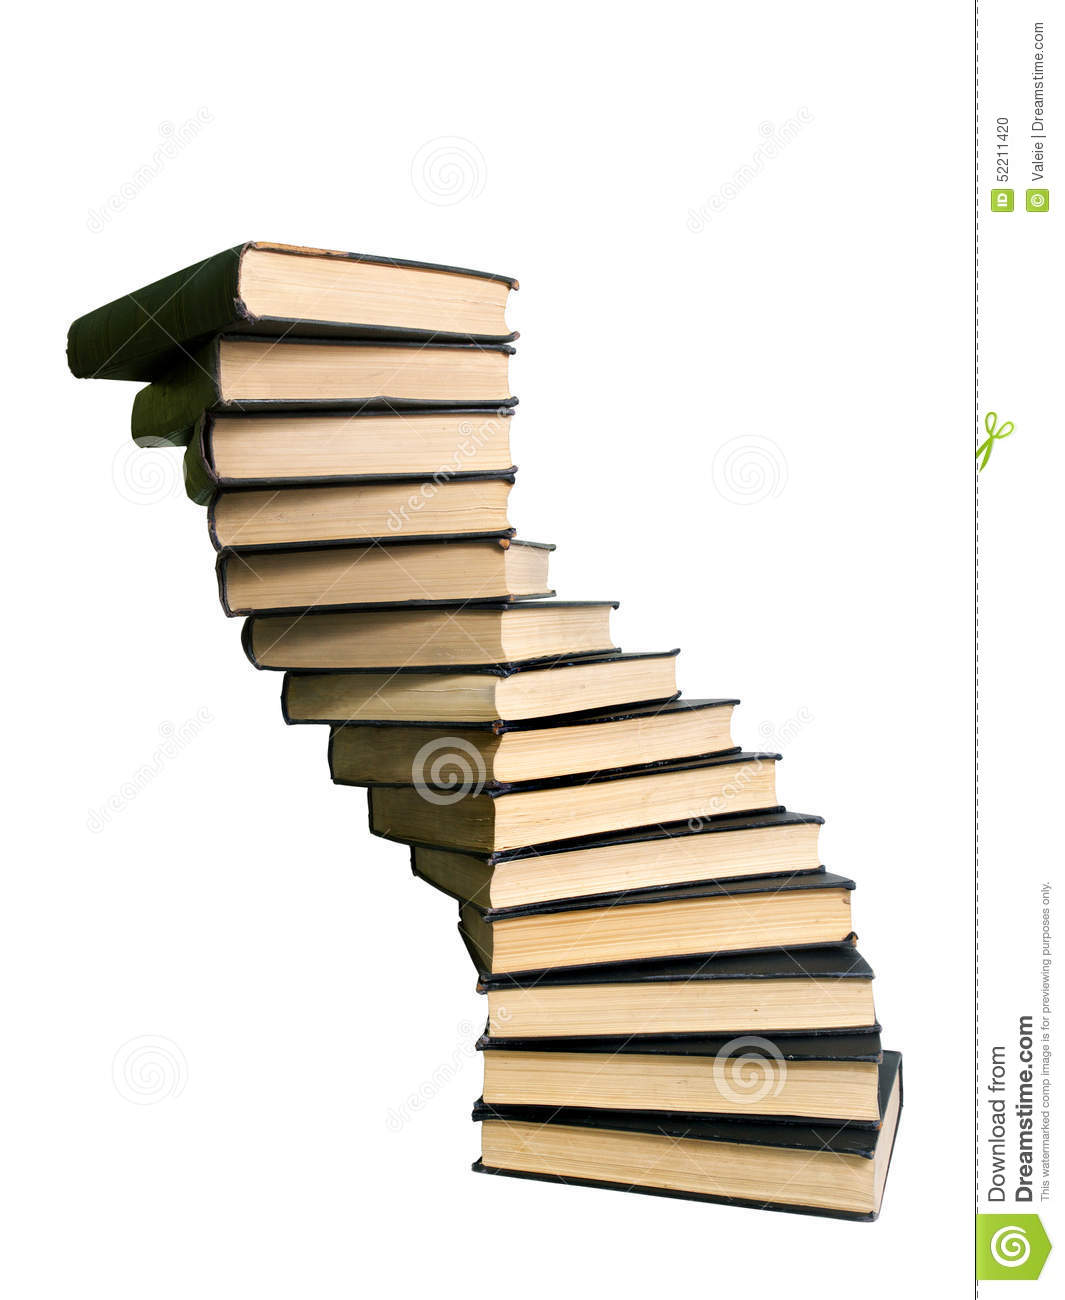 Large stack of books stock photo. Image of tome, knowledge ...